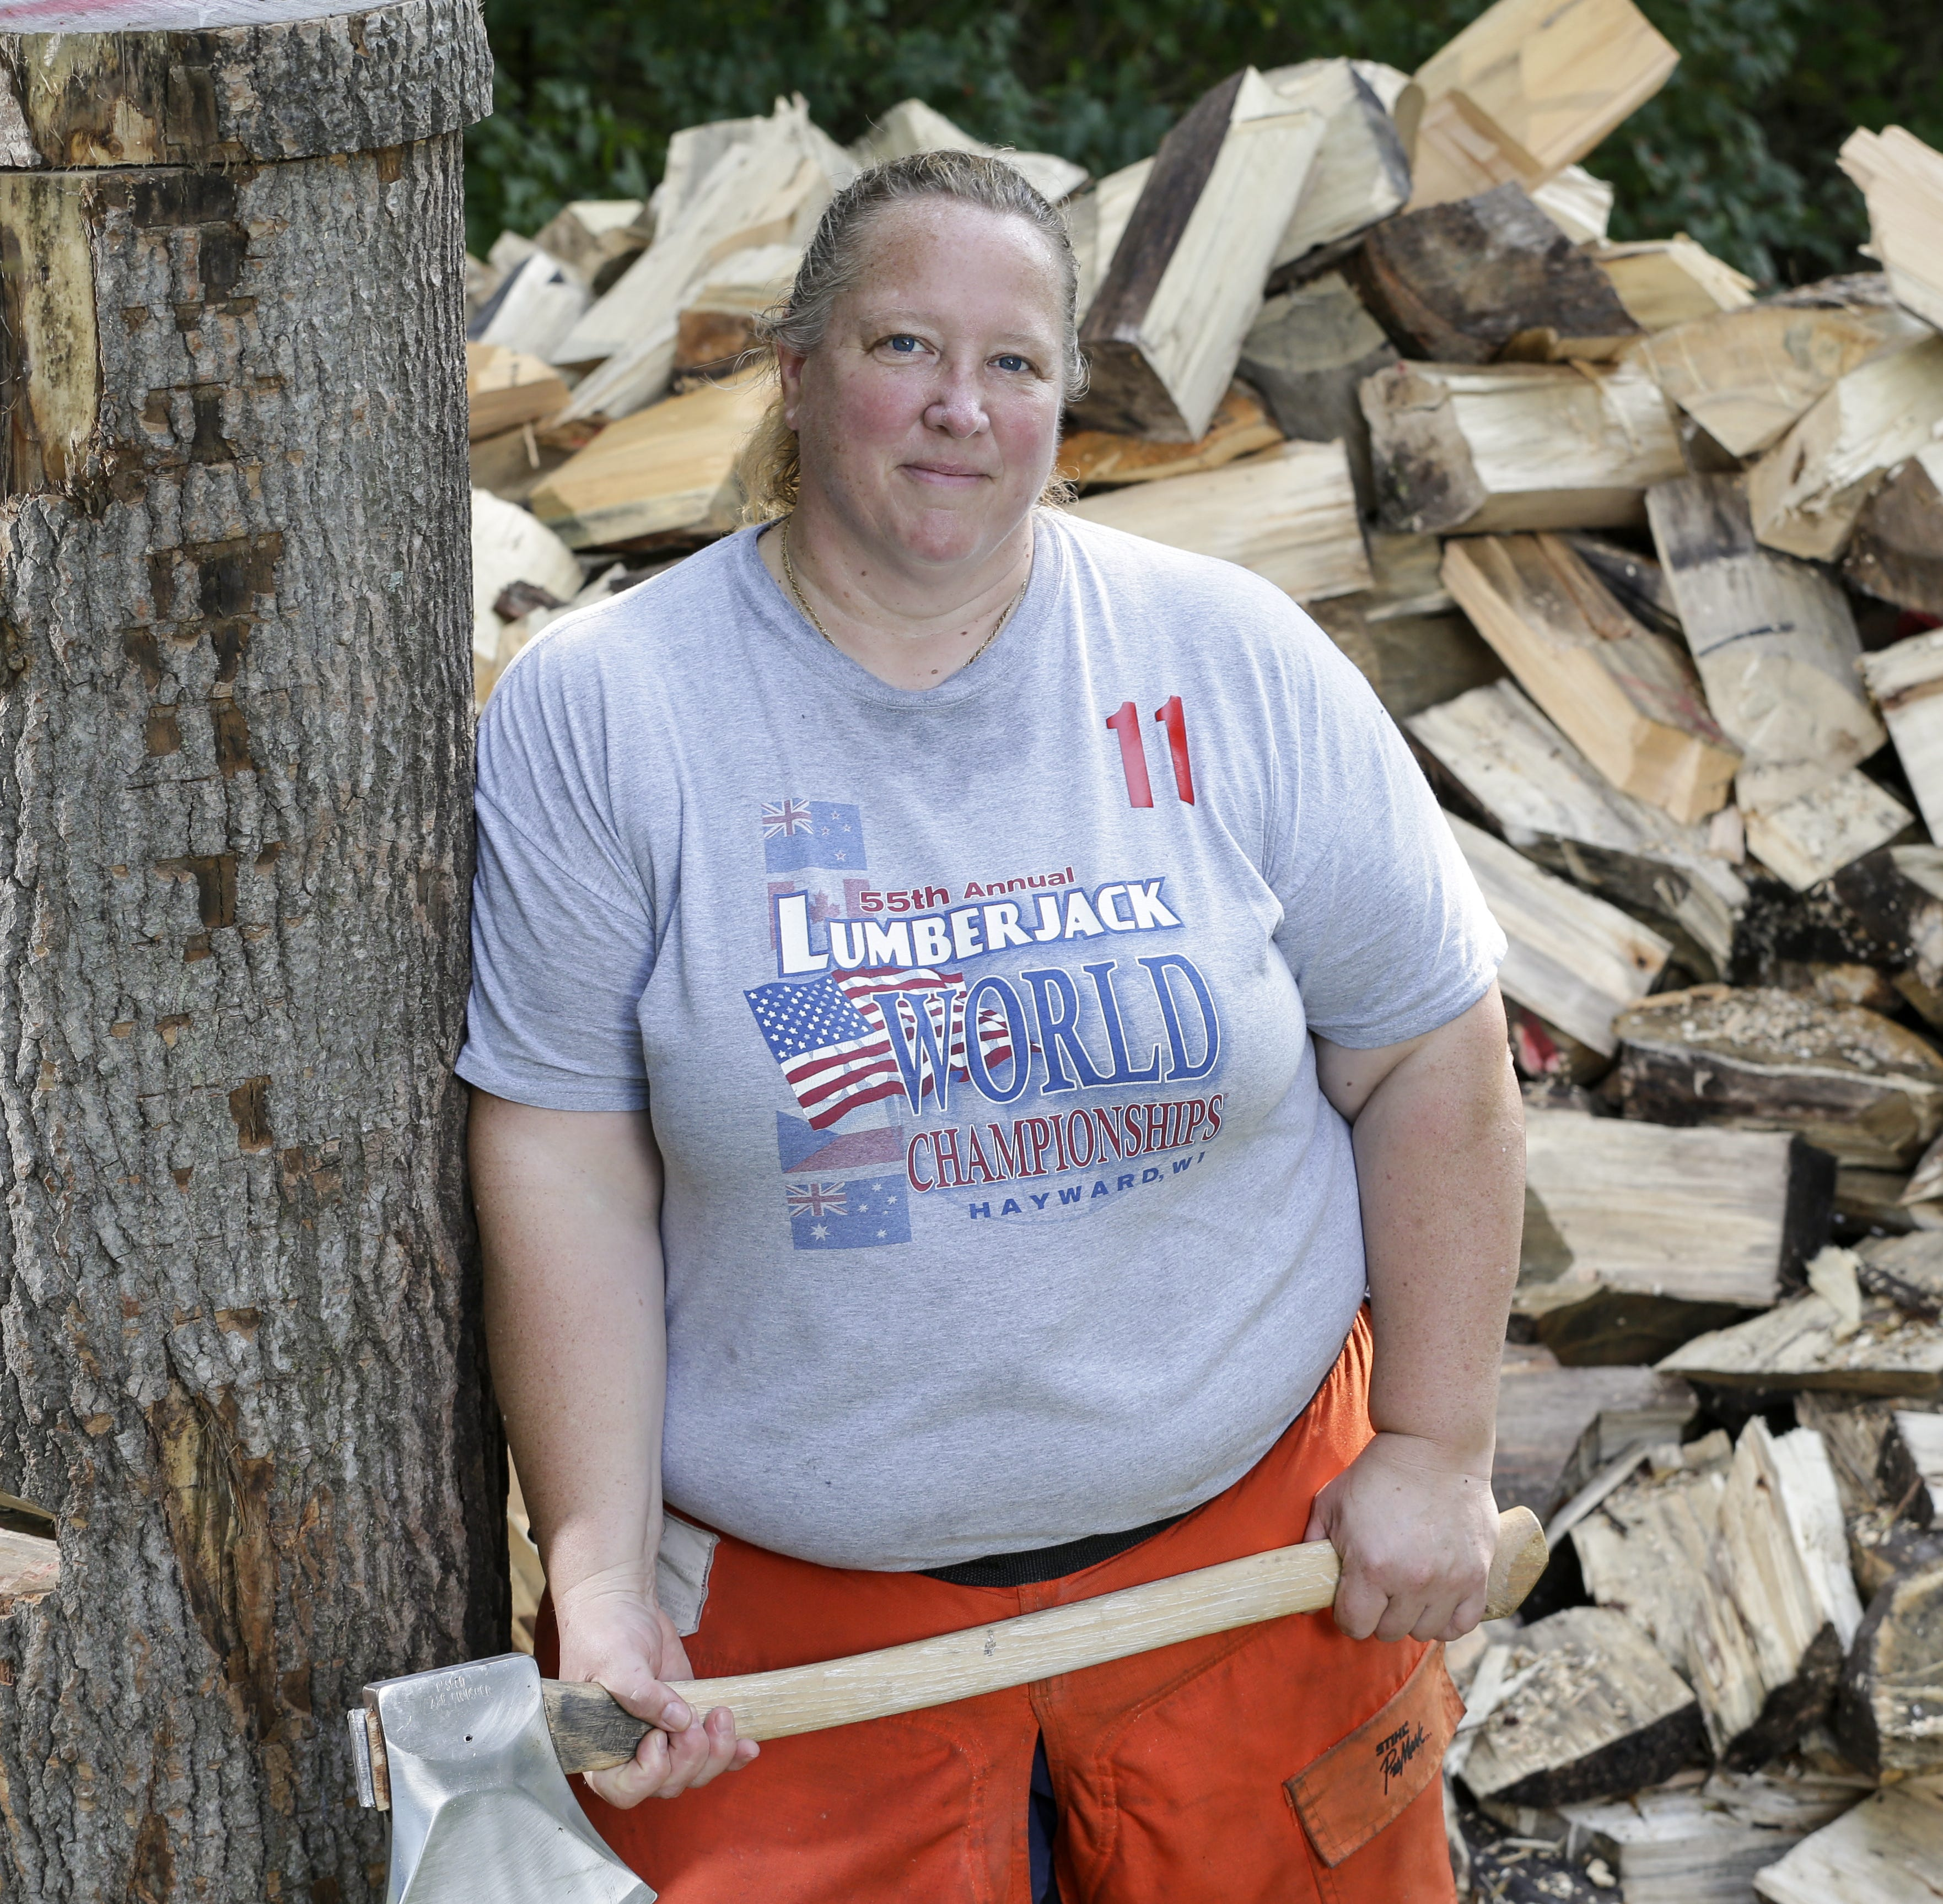 Manitowoc's Nancy Zalewski is a top timber sports athlete who also owns a world record